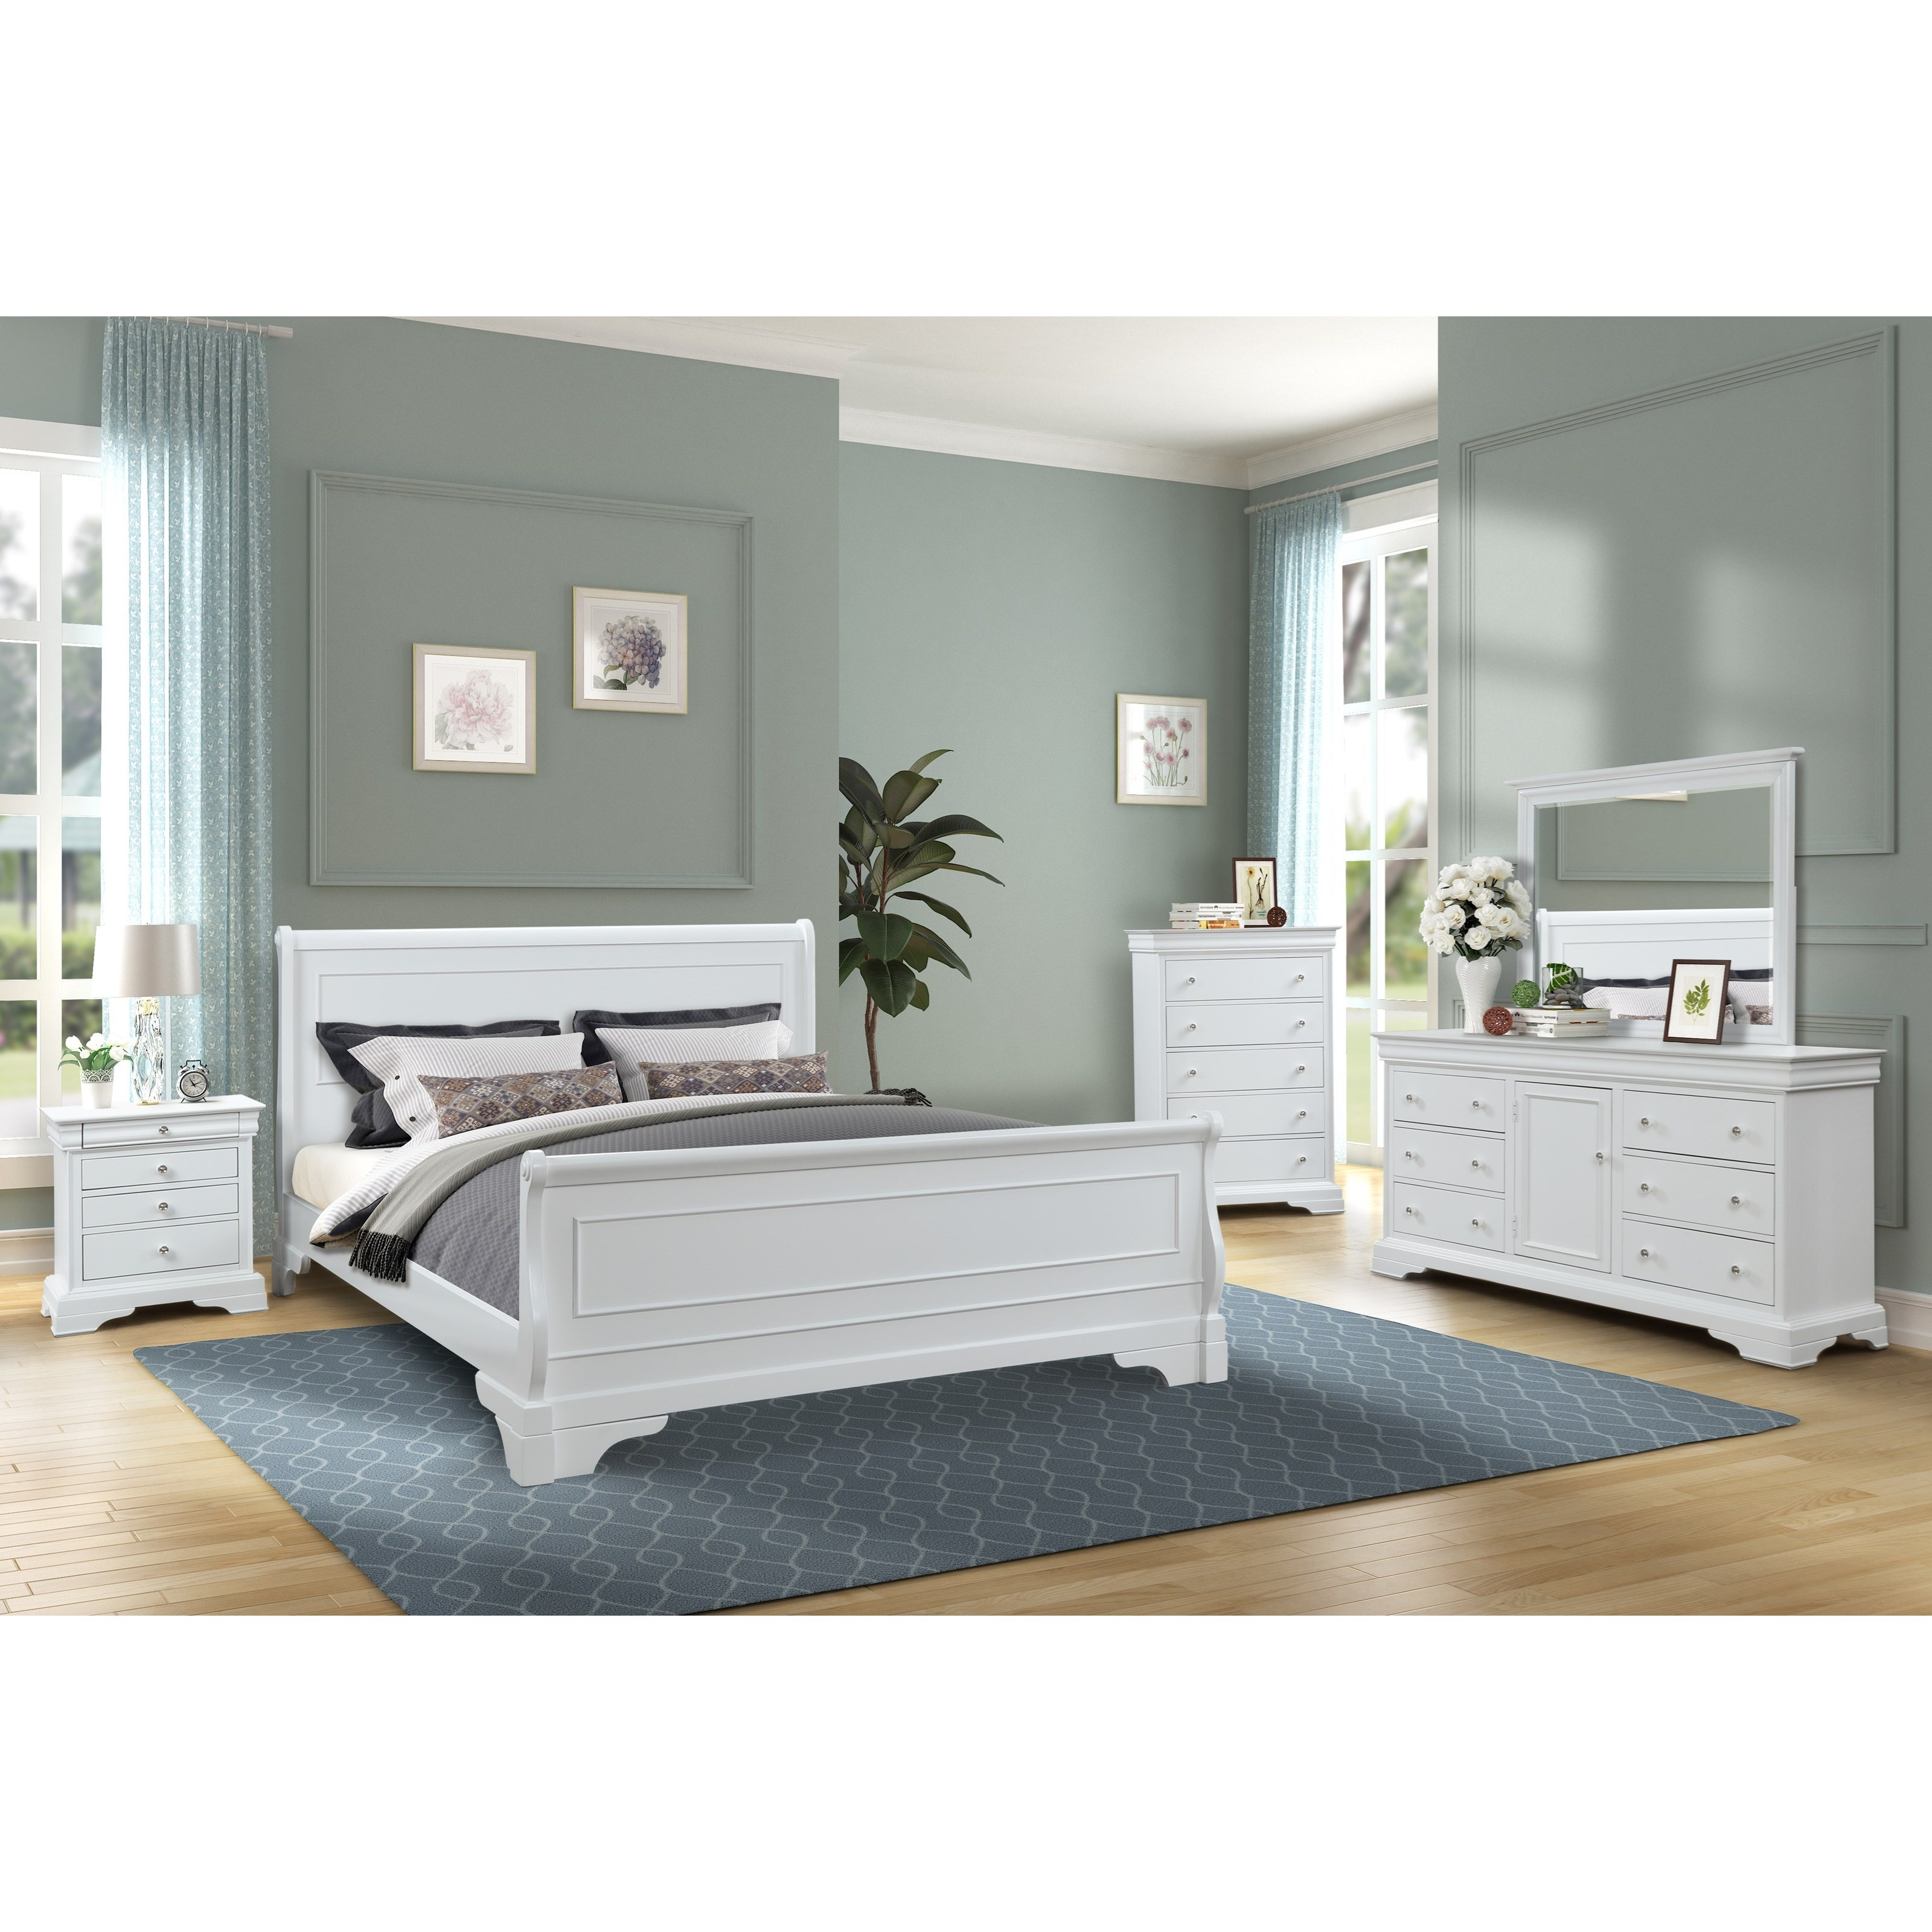 VERSAILLES California King Bedroom Group by New Classic at Rife's Home Furniture